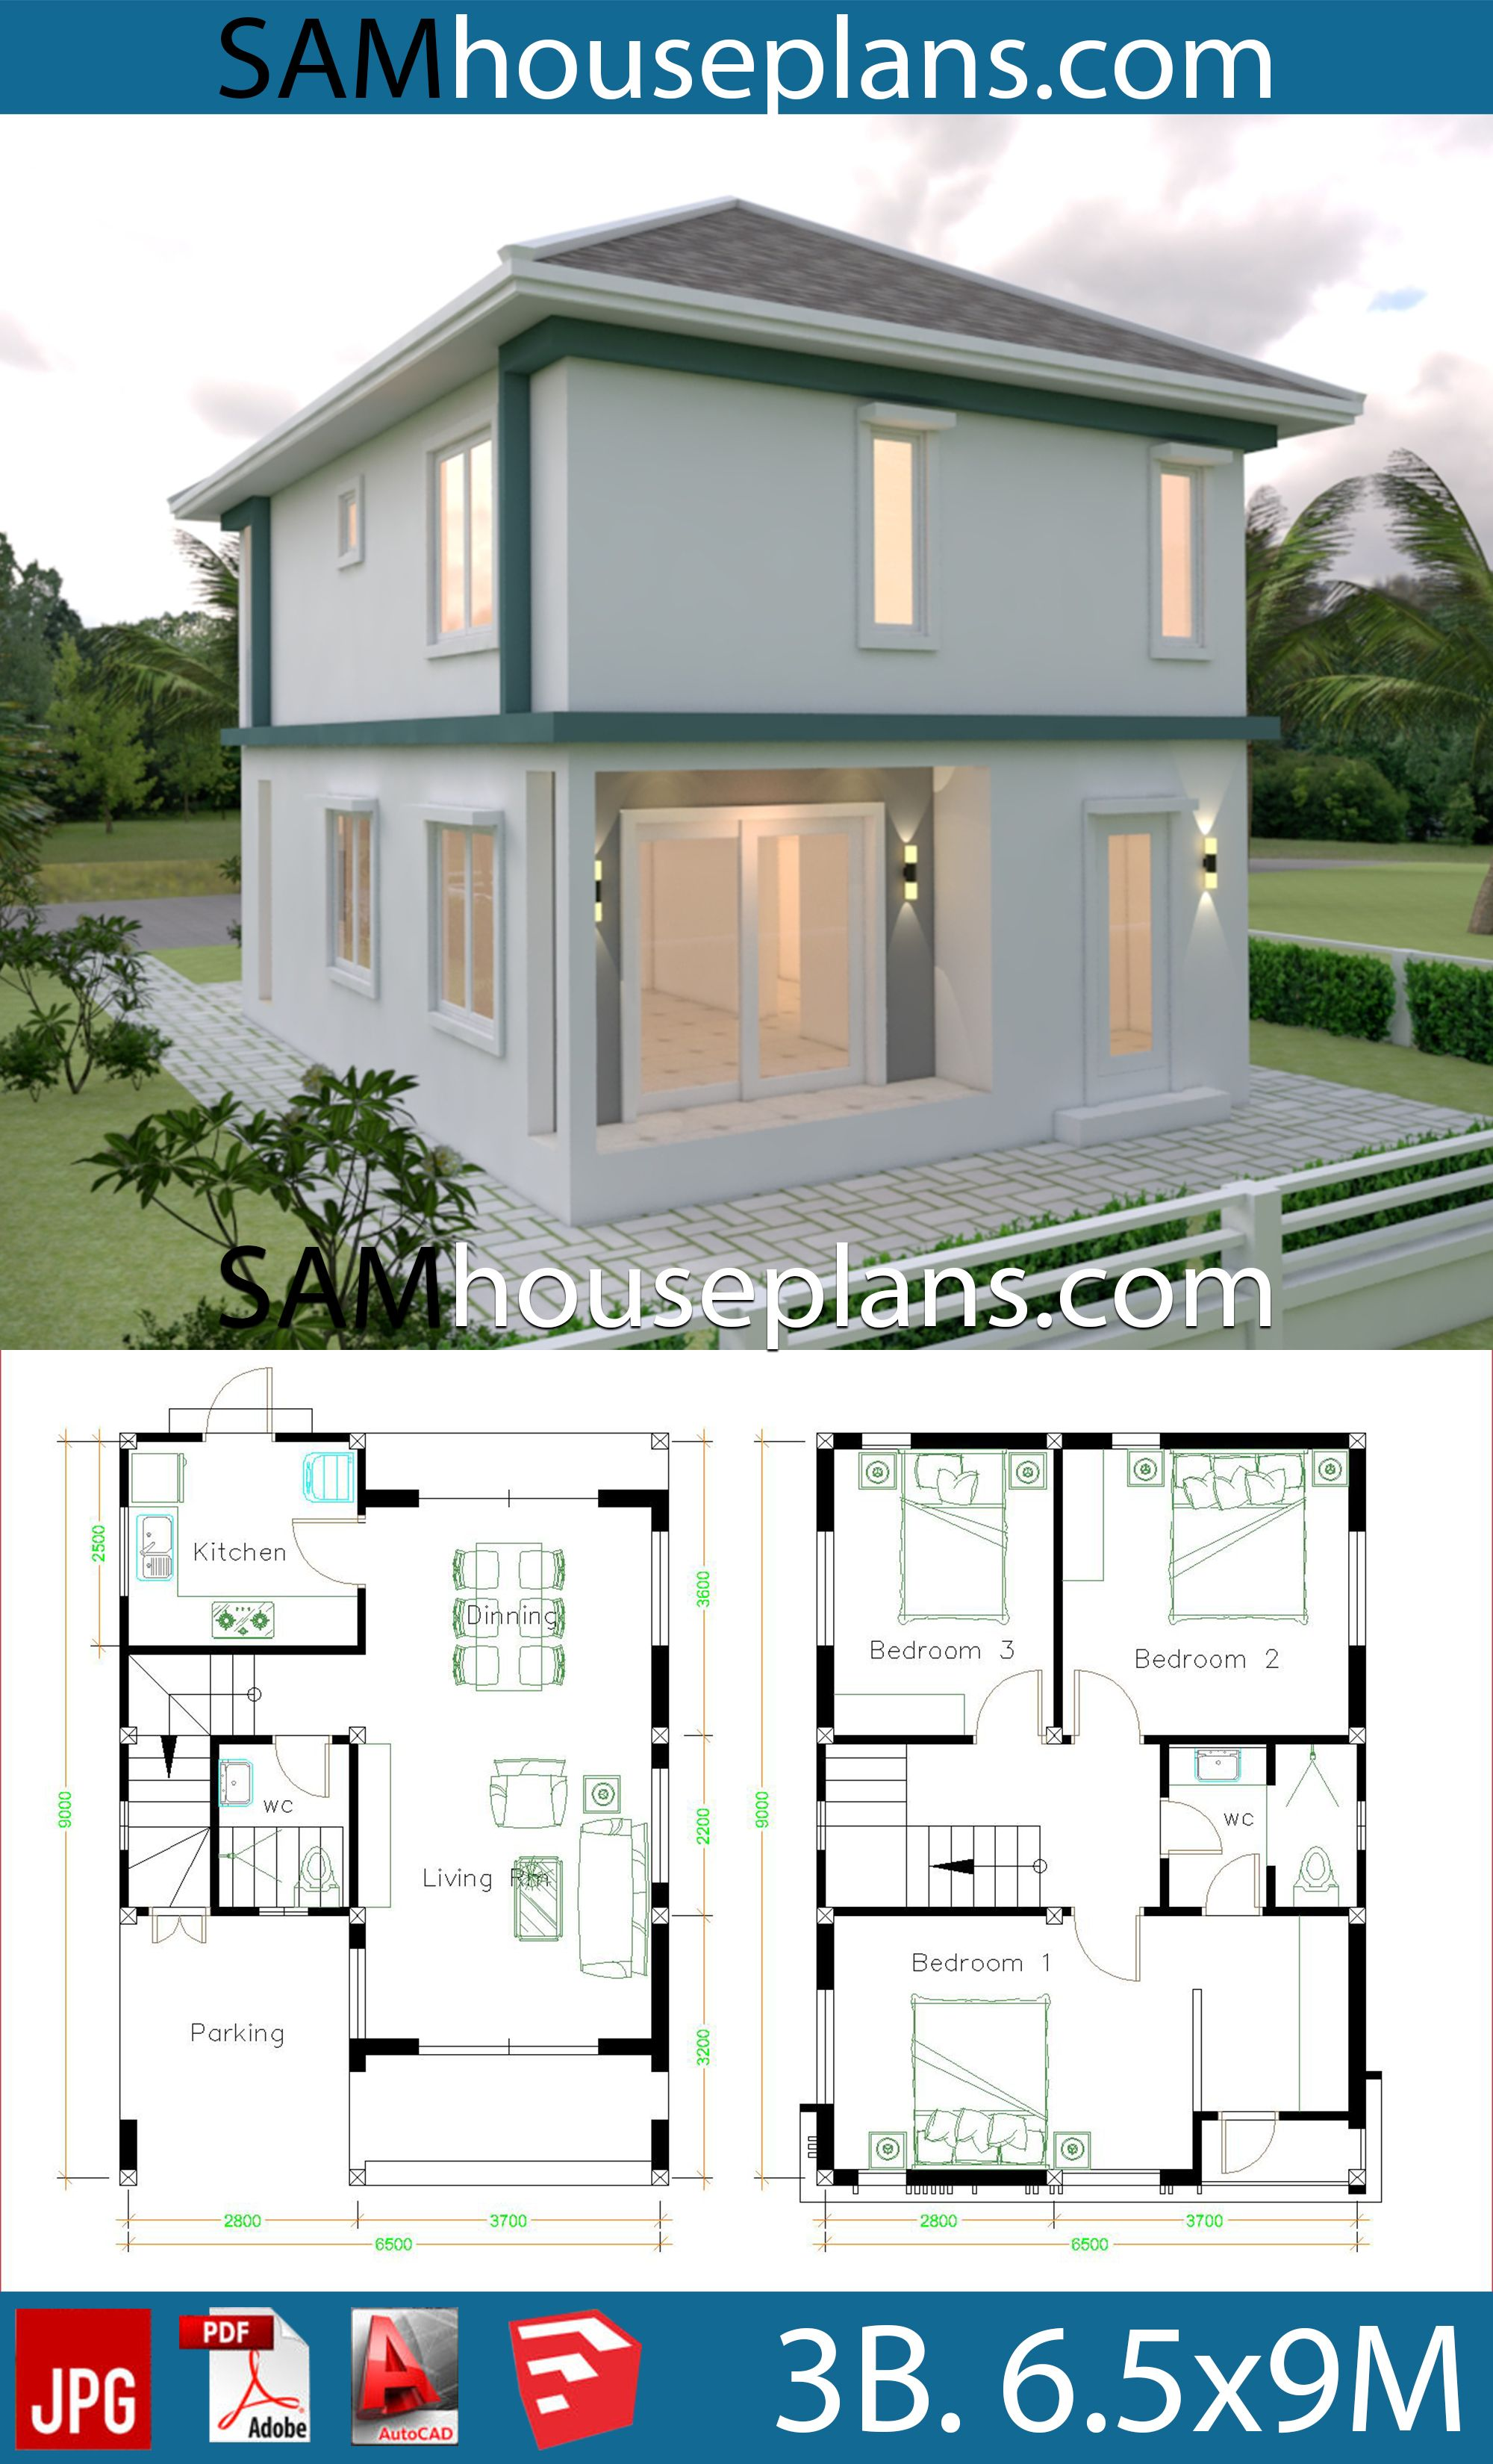 House Plans 6 5x9 With 3 Bedrooms House Plans Free Downloads House Plans Bungalow House Design Simple House Design